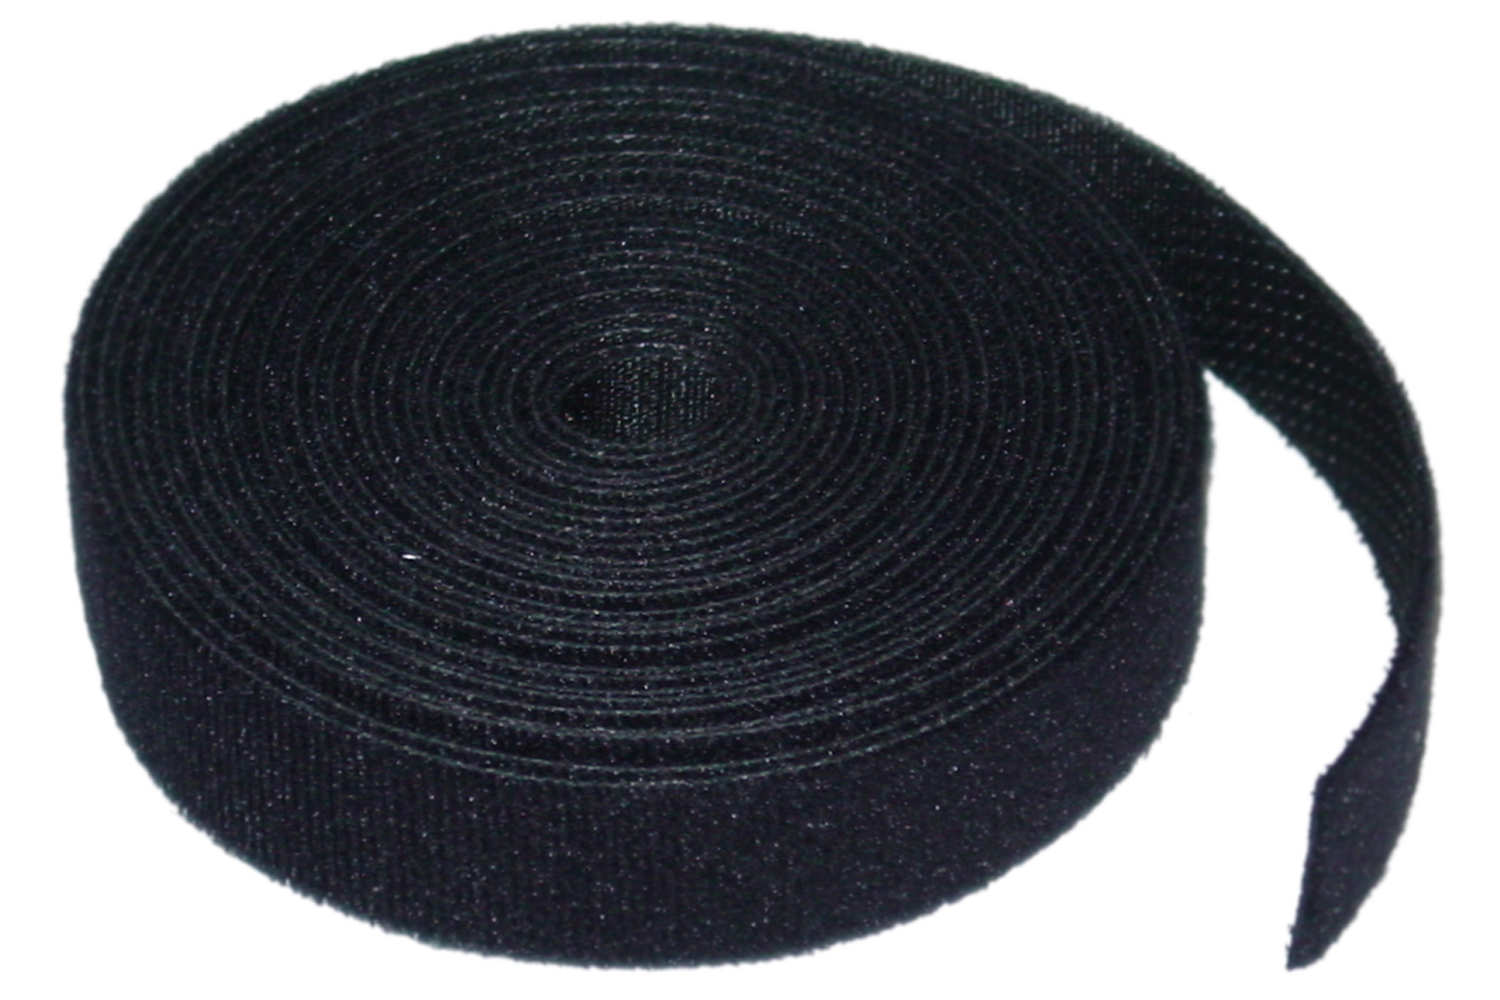 Cable Wholesale Velcro Cable Tie Roll, 3 4 inch x 5 yards by CableWholesale